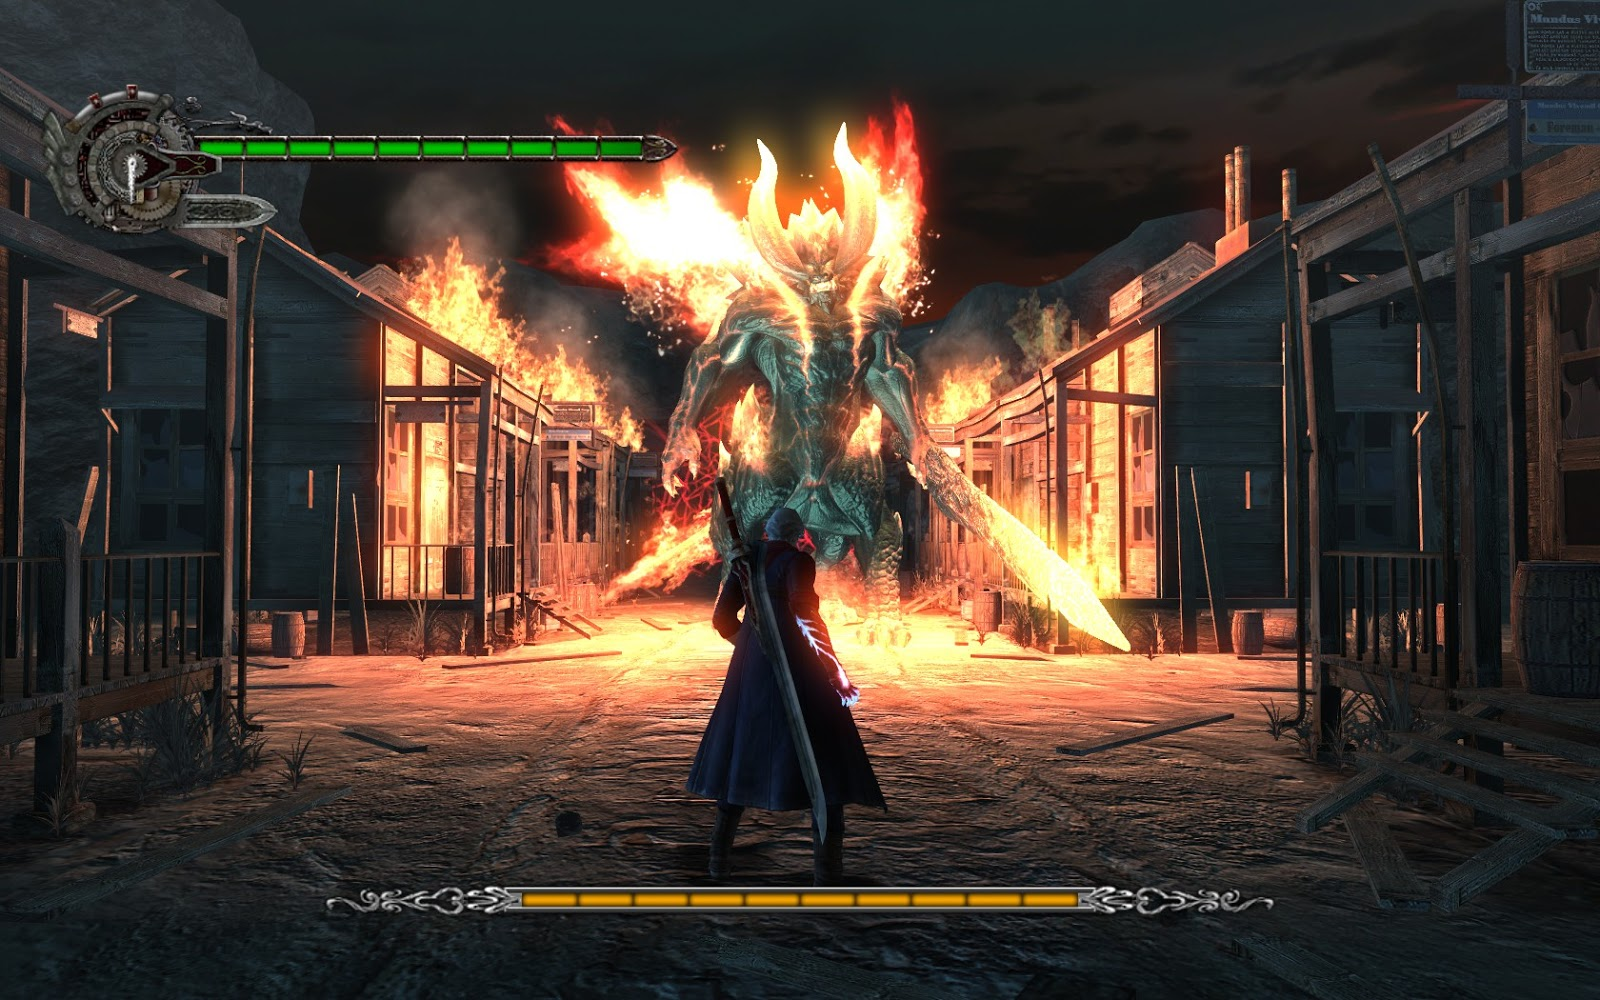 devil may cry 4 refrain apk + data mod